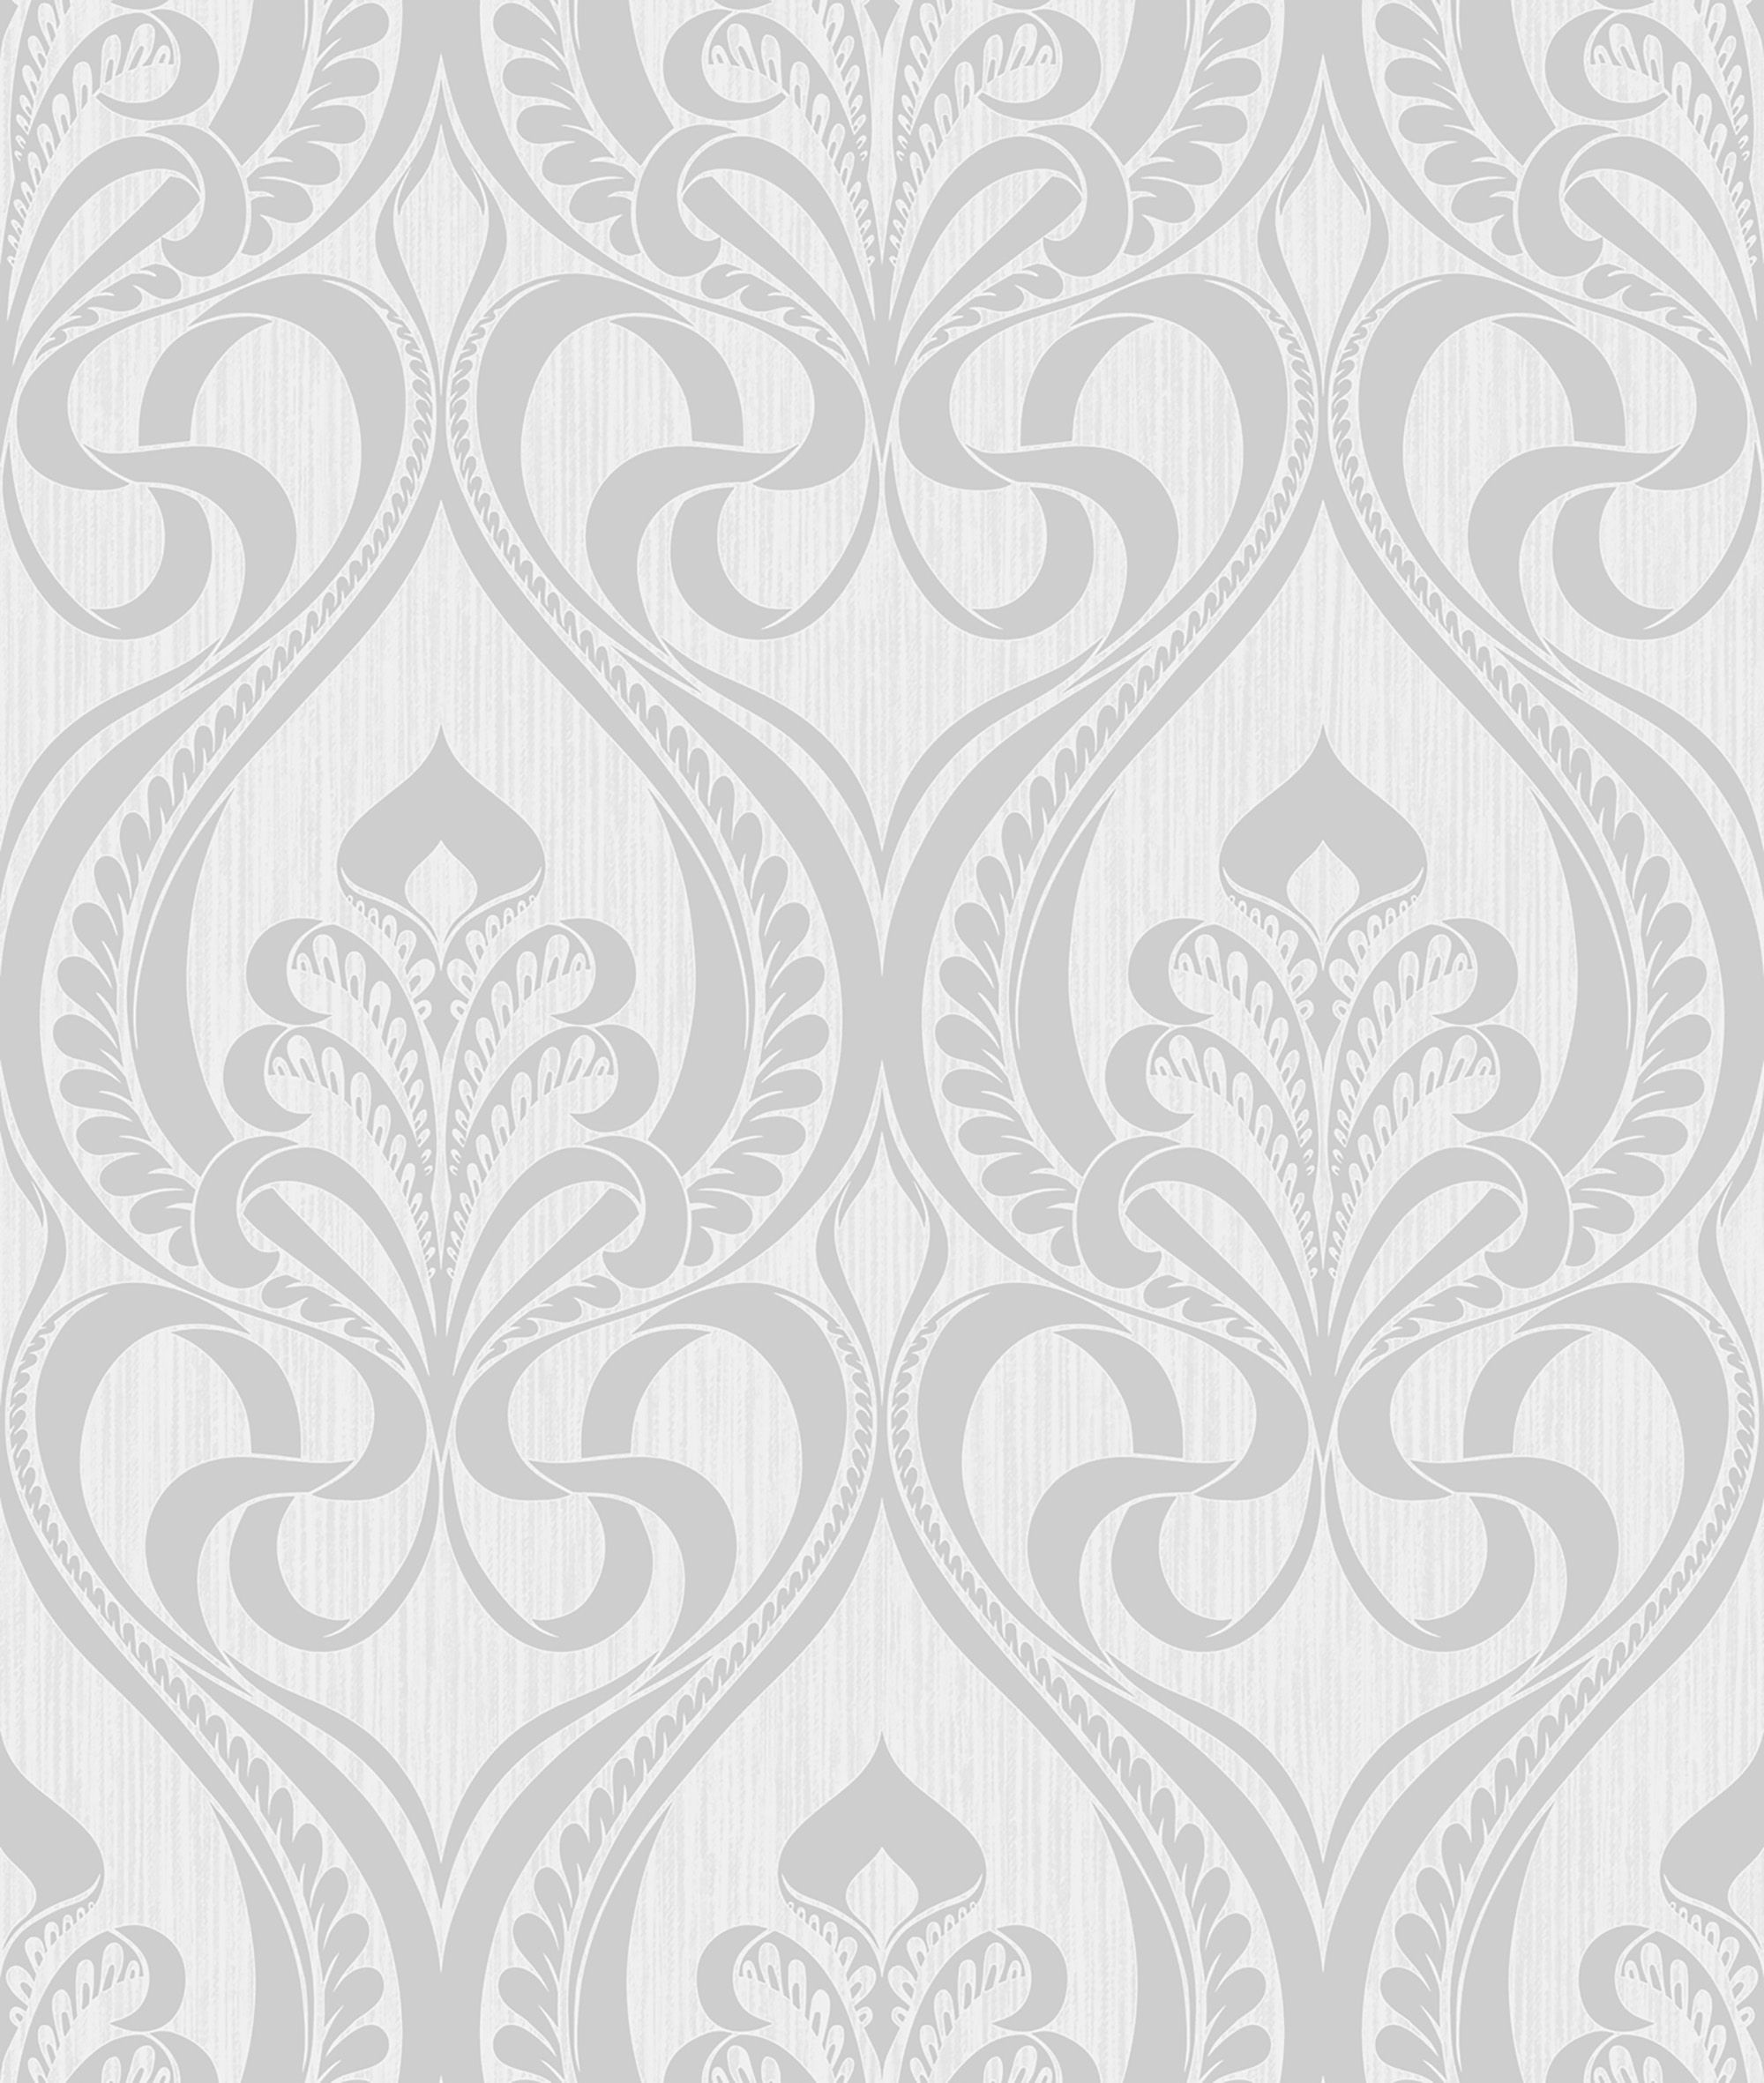 B Q Audley Wallpaper Damask Wallpaper 6 00 Diy Compare Finding You The Best Diy Products And Prices